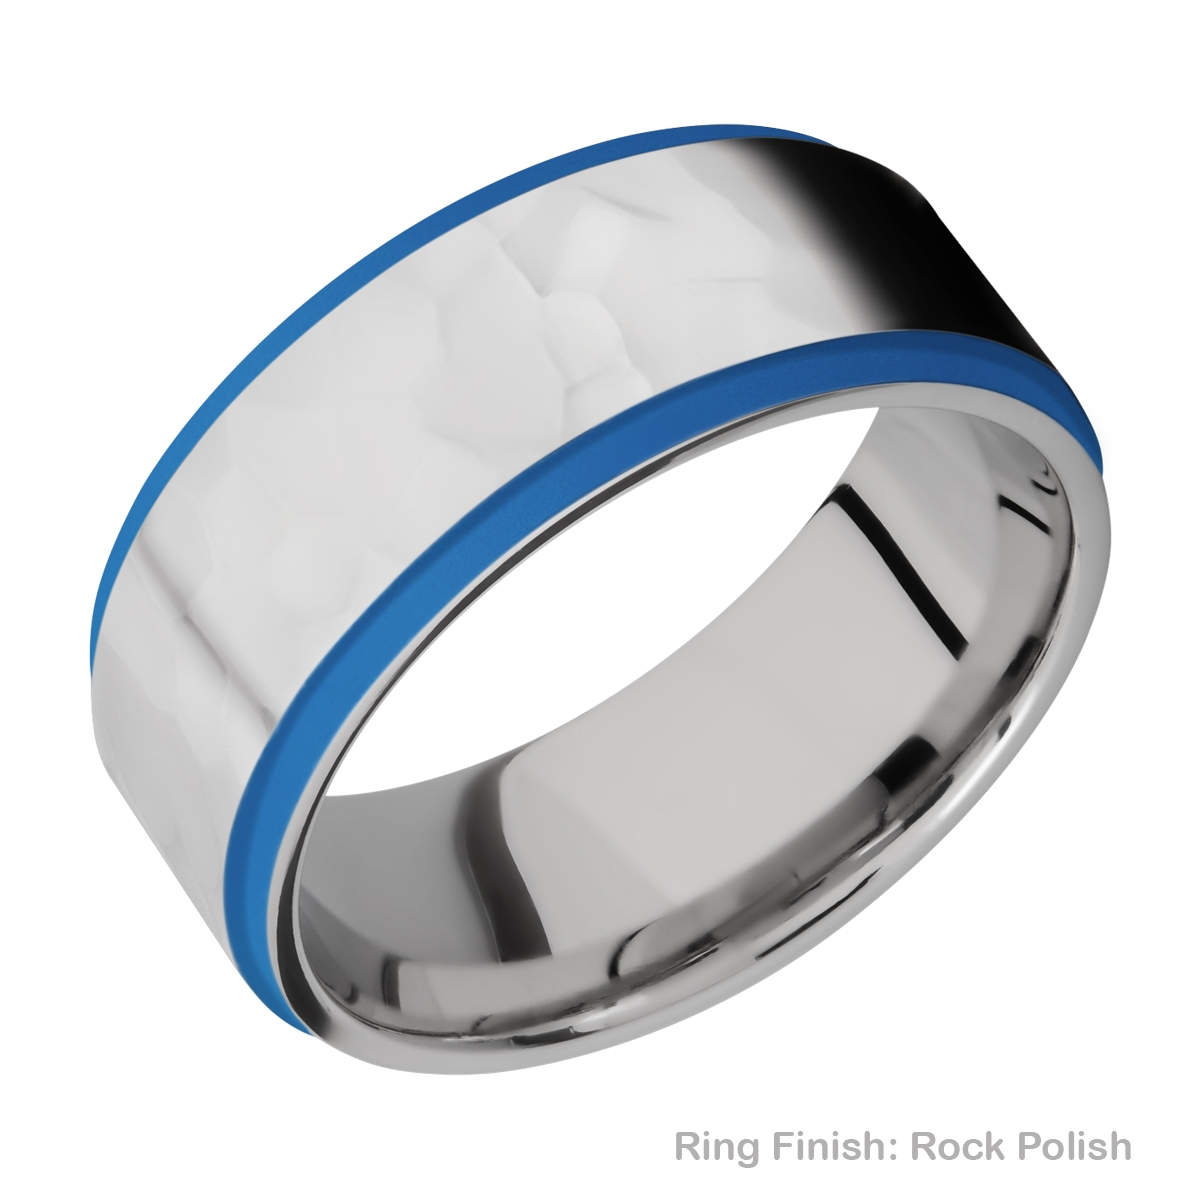 Lashbrook CC10FGE21EDGE/A/CERAKOTE Cobalt Chrome Wedding Ring or Band Alternative View 16